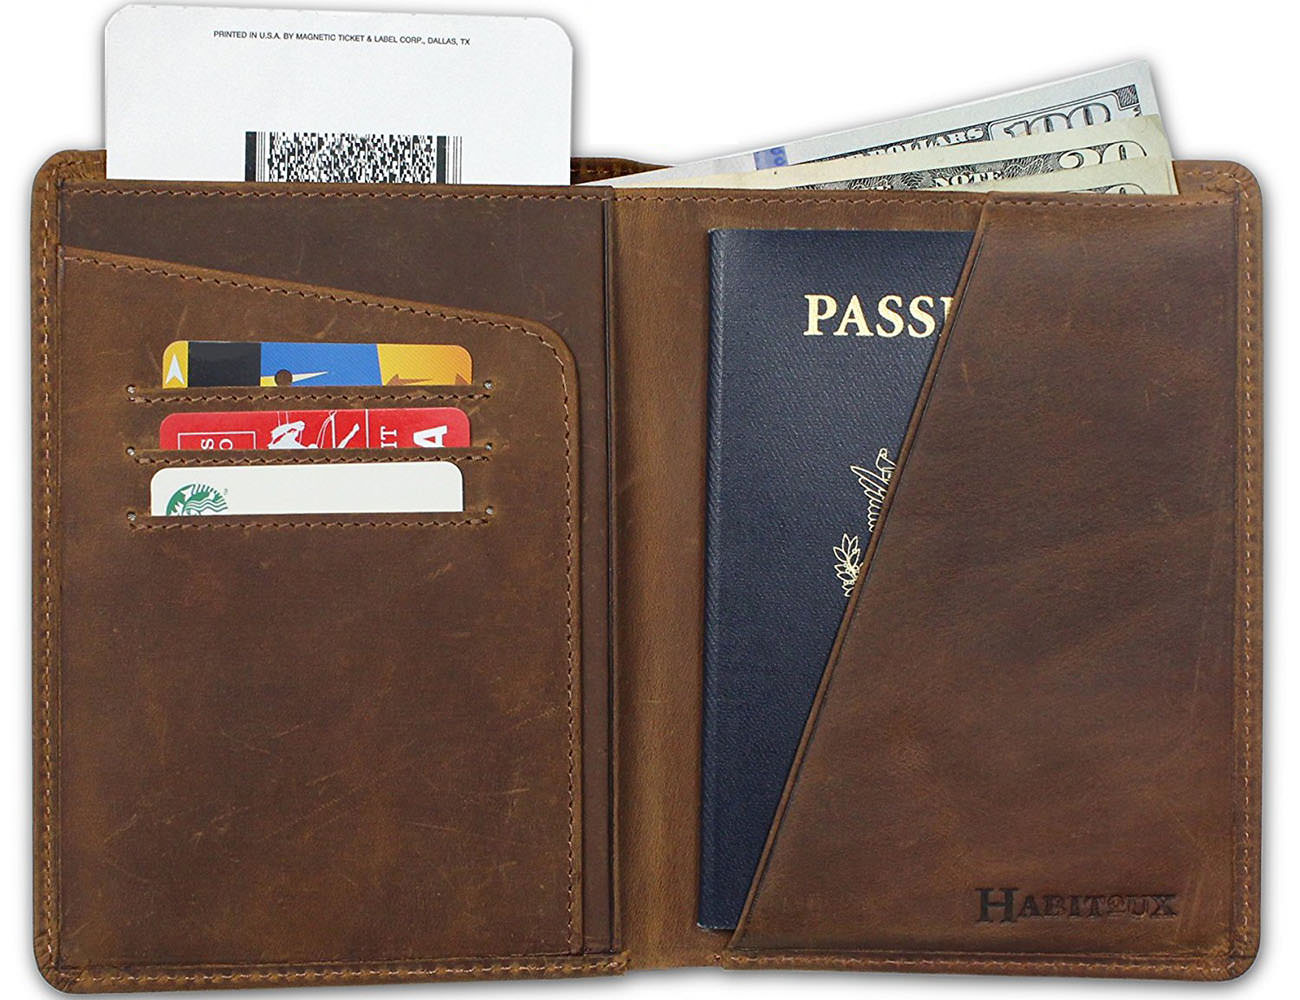 Habitoux RFID Blocking Passport Holder Travel Wallet